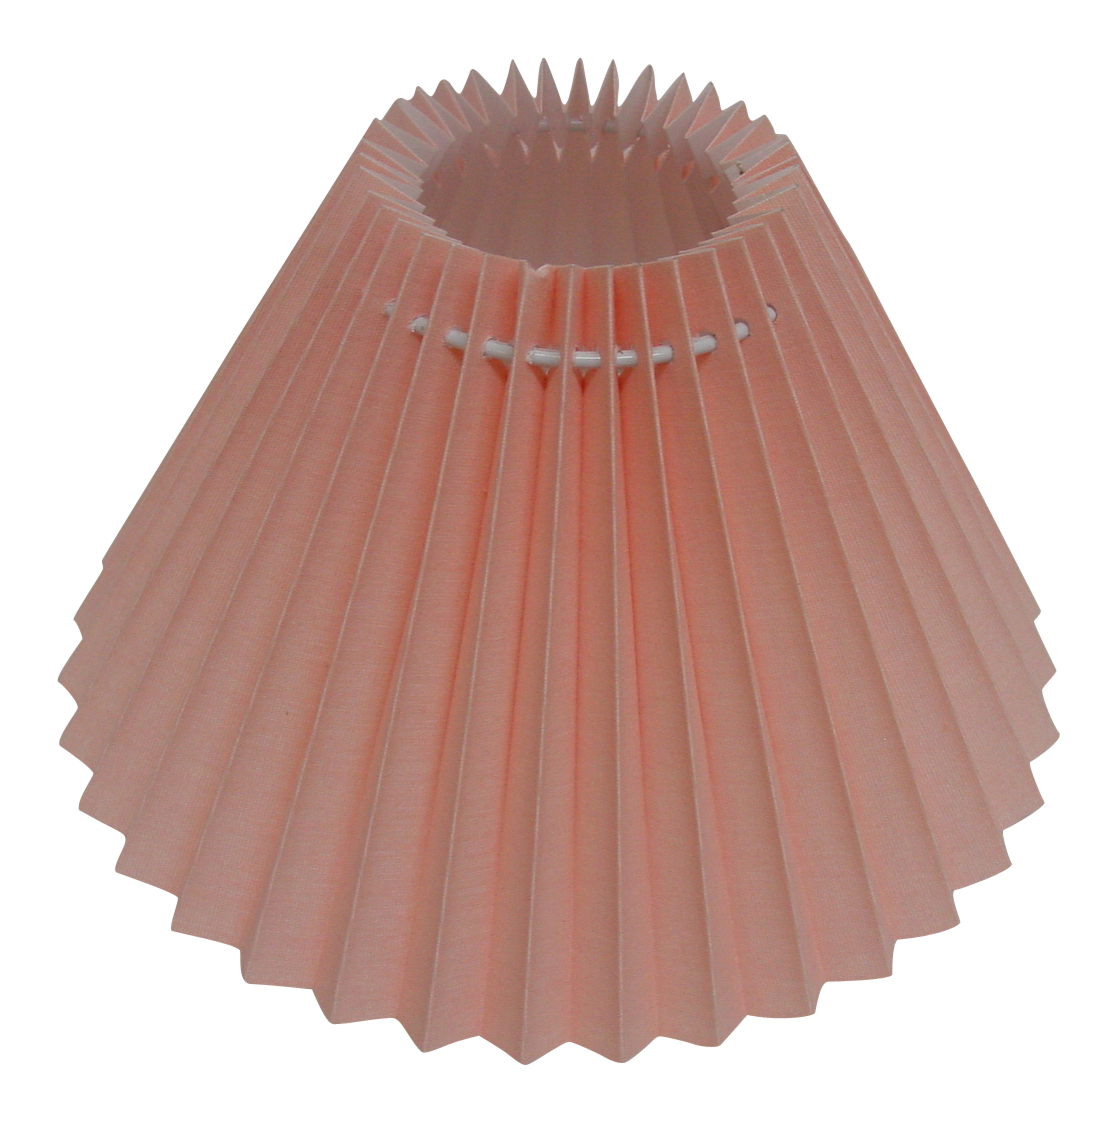 New 10quot Pleated Coolie Pendant Ceiling Table Lamp Shade eBay : v23n2c51110 from www.ebay.com.sg size 1117 x 1122 jpeg 585kB